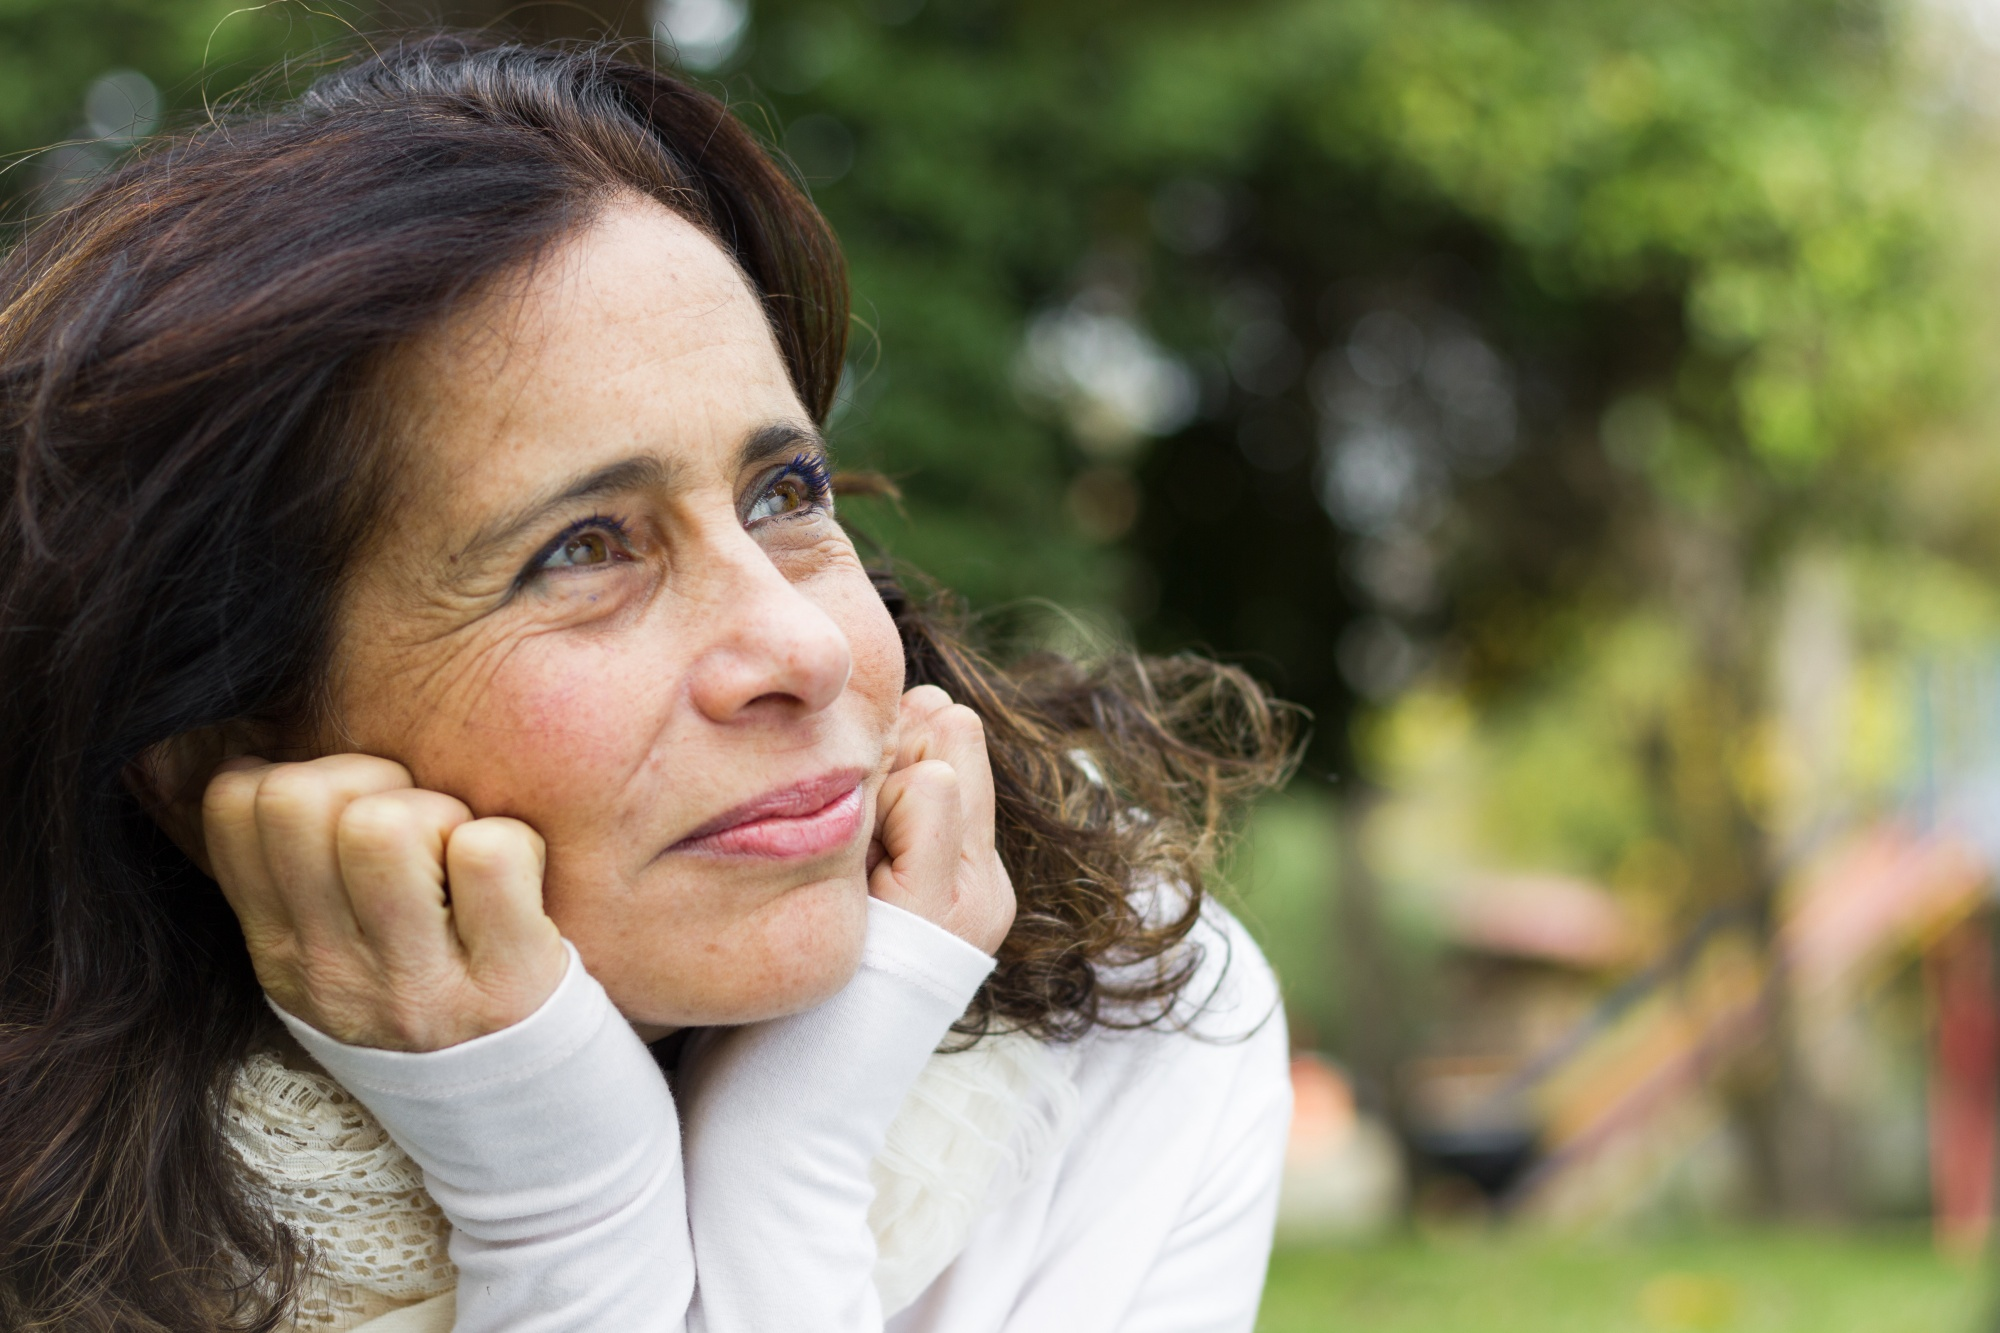 Starting a self care routine, Portrait of middle aged woman with face resting on hands and visionary look. Closeup on pretty mature lady looking up thoughtful with positive expression